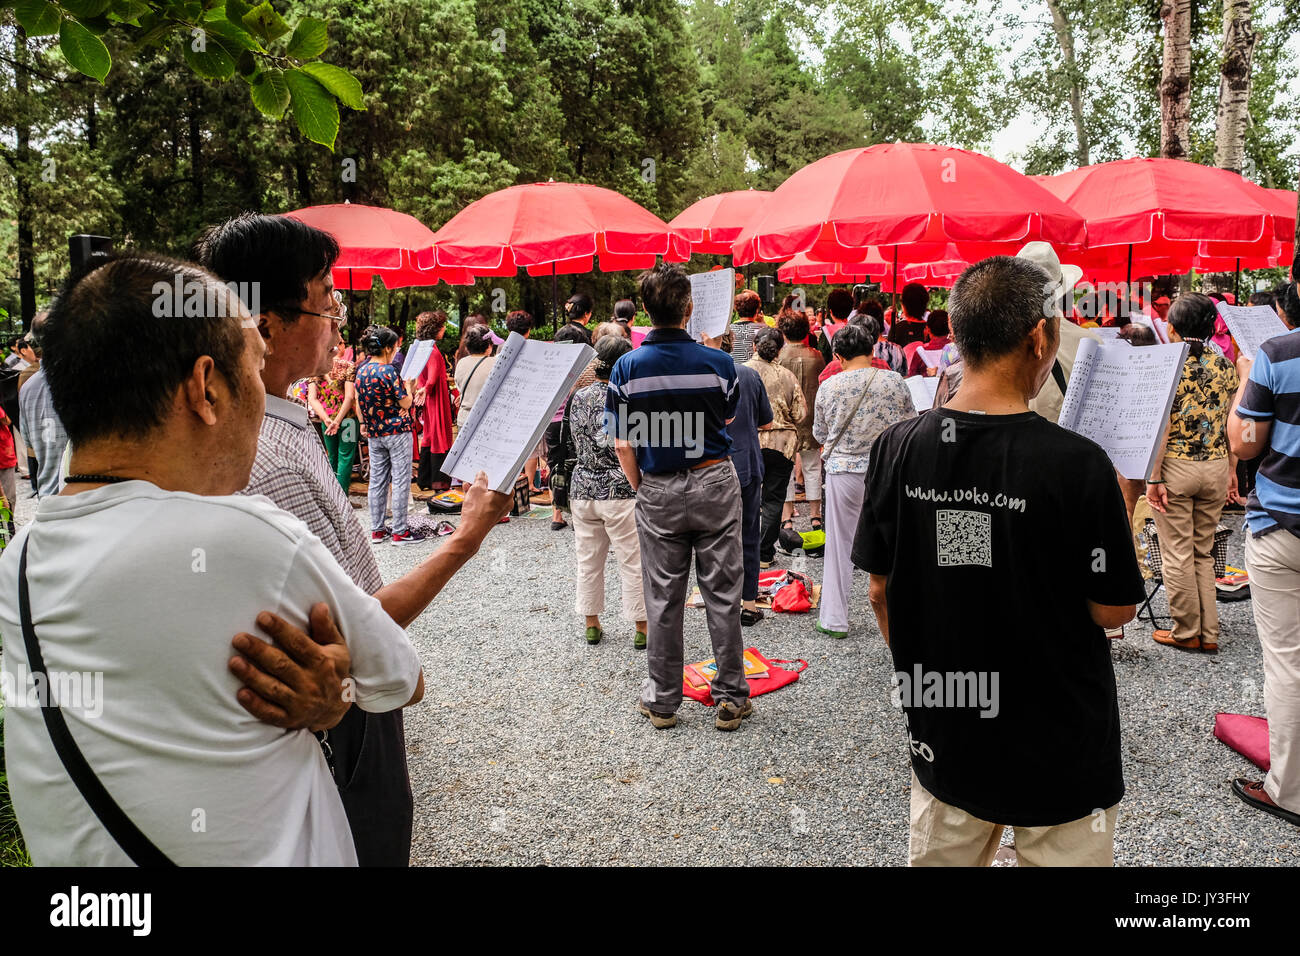 A group of retired Chinese men and women signing old songs together at Yu Yuan Tan park in Beijing, China - Stock Image